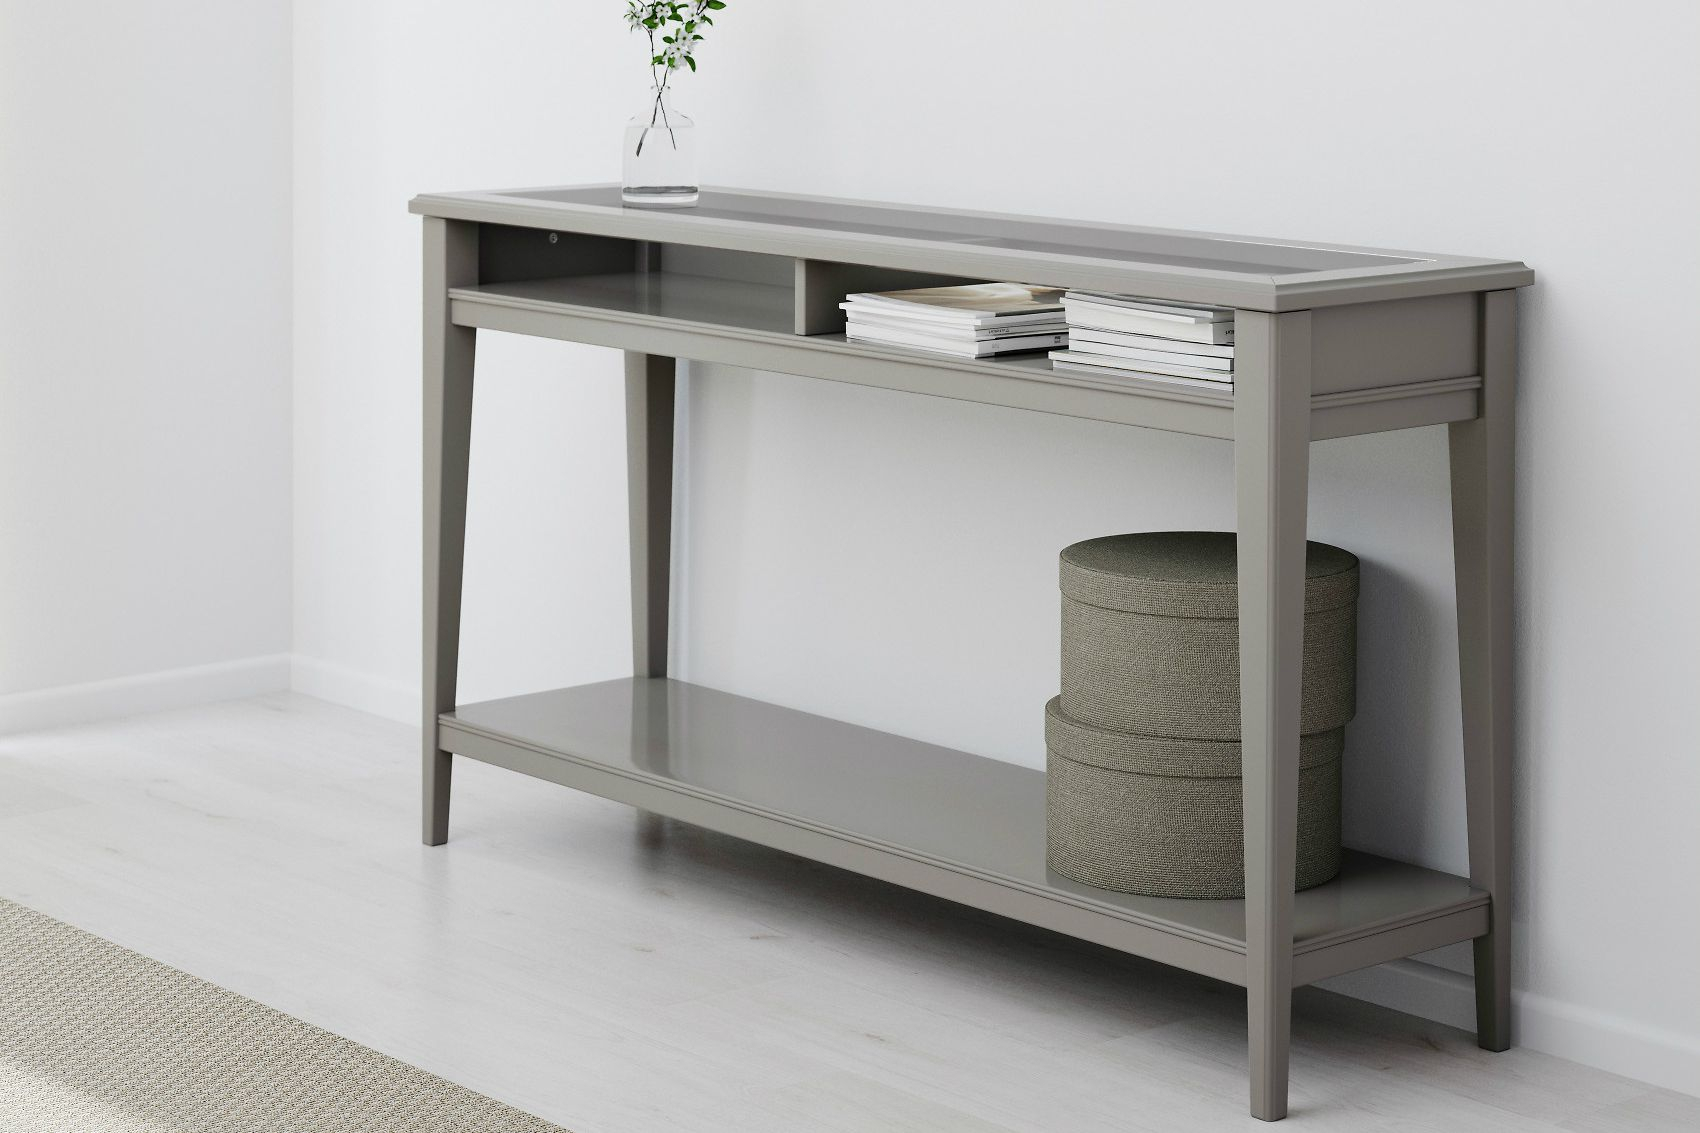 13 Pretty Console And Entry Tables For Your Home With Regard To Intarsia Console Tables (View 7 of 30)